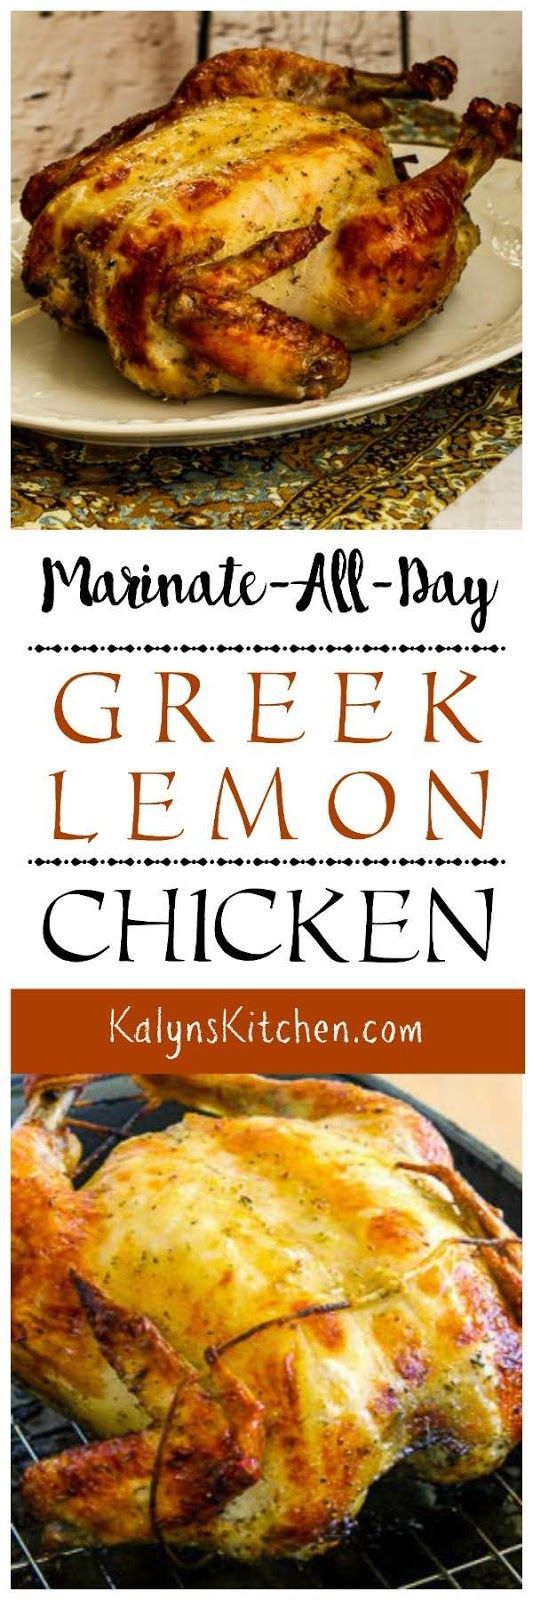 Marinate-All-Day Greek Lemon Chicken is great for a family-friendly low-carb meal. Put the chicken in the fridge to marinate when you go to work, then just roast it and make a side dish when you get home. This recipe is also gluten-free, dairy-free, Keto, Whole 30, and Paleo! found on KalynsKitchen.com